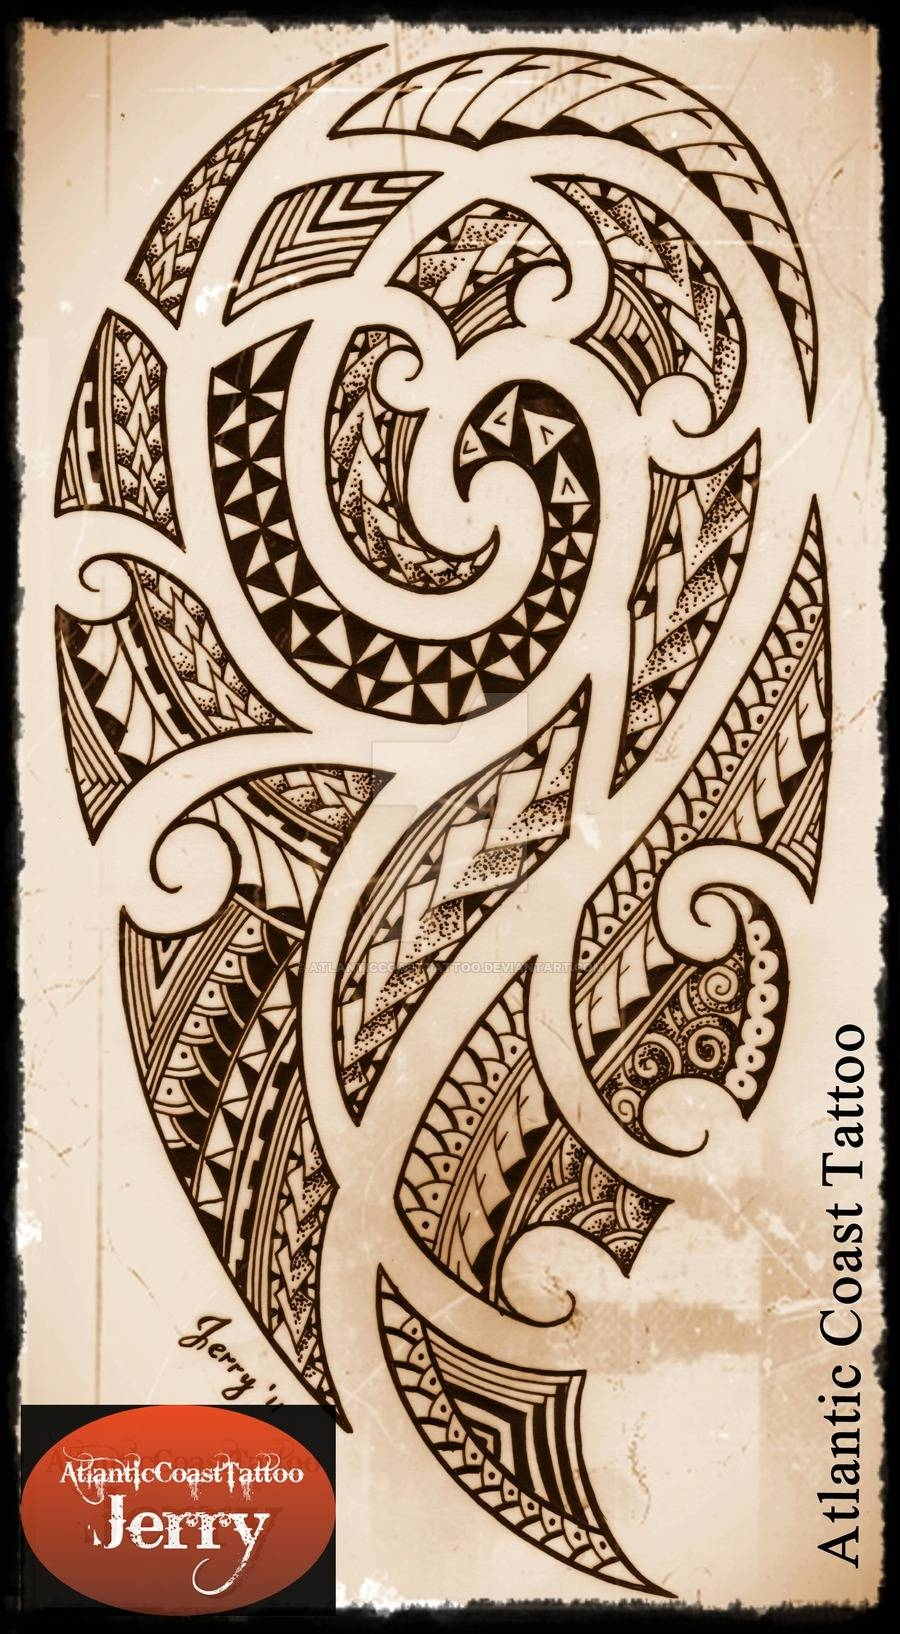 Polynesiantattoo | Explore Polynesiantattoo On Deviantart Inside Latest Polynesian Wall Art (View 13 of 20)